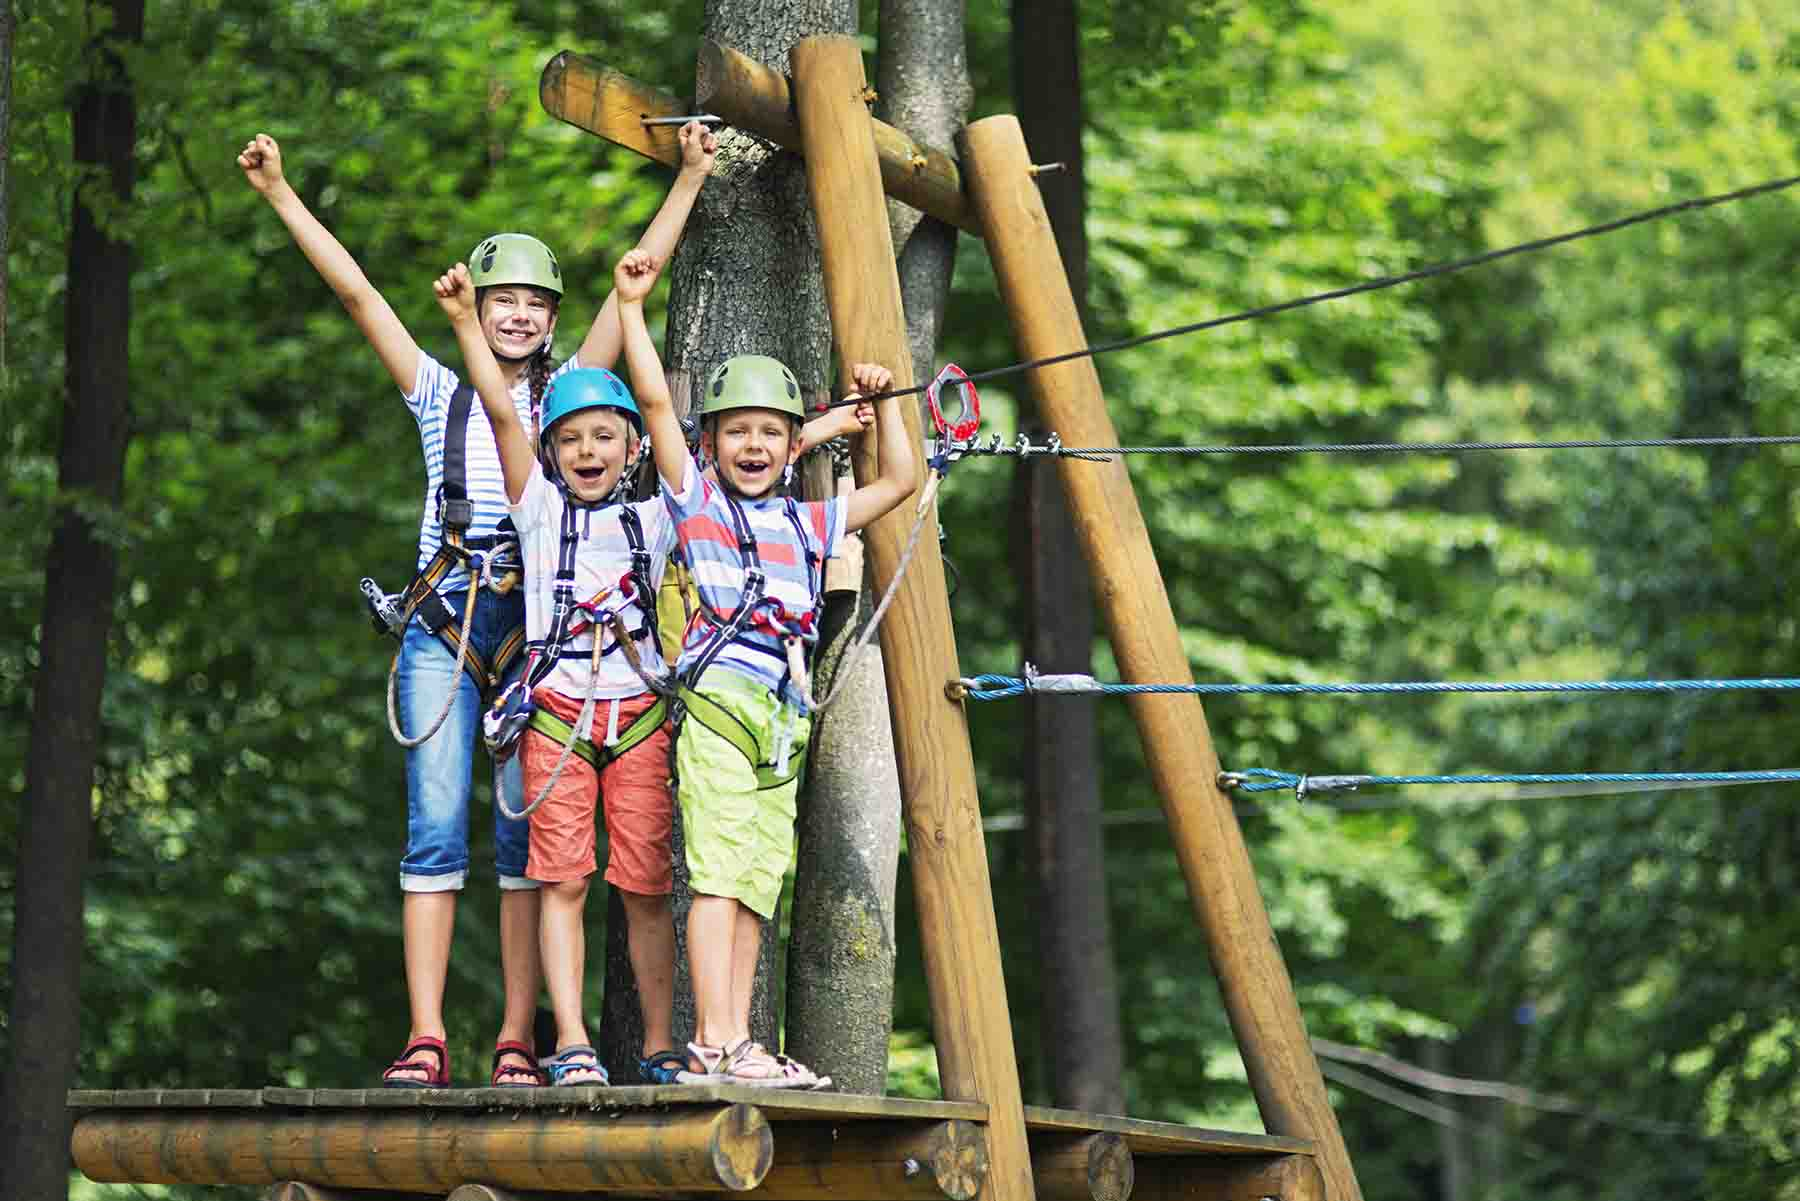 Kids zip lining at Shallotte Park in North Carolina